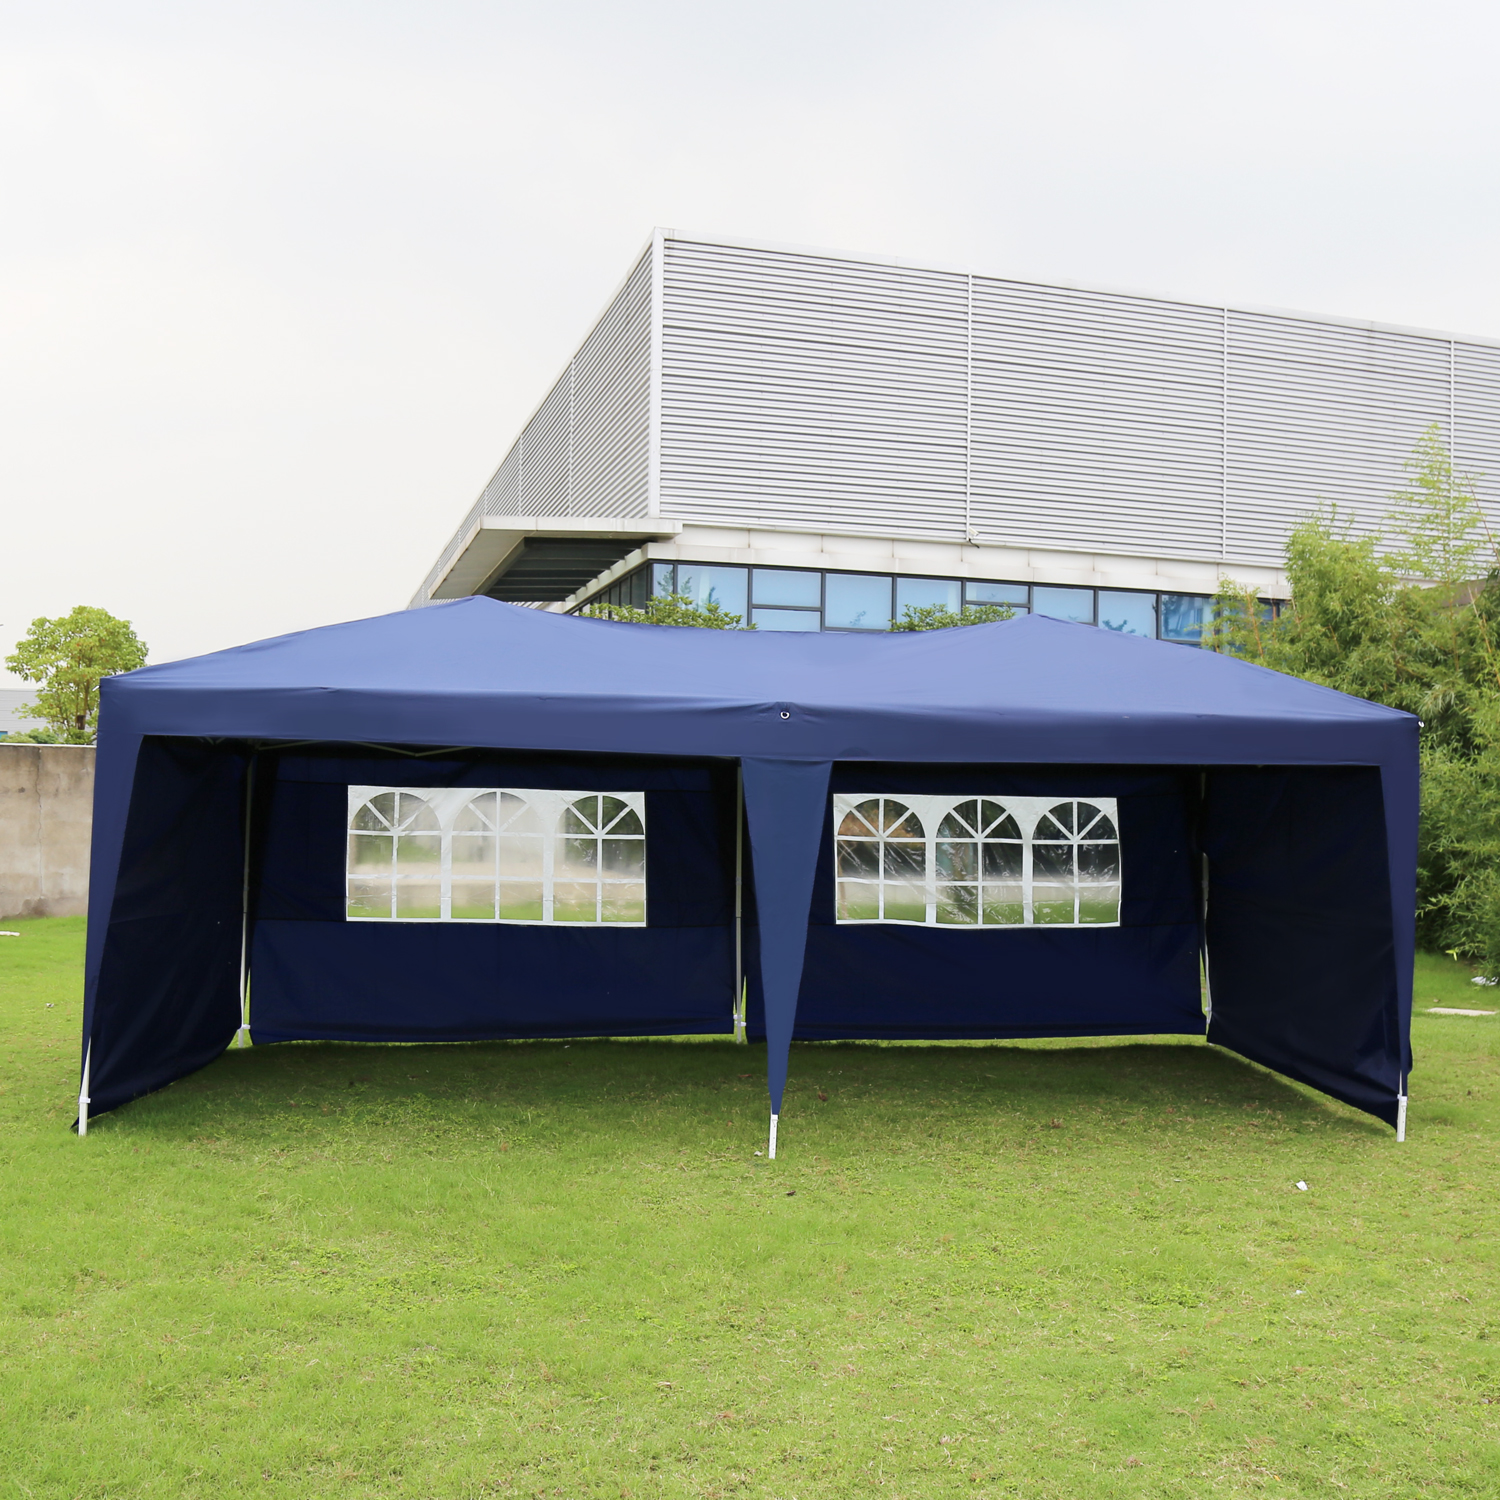 Kinbor 10'x20' Foldable Portable Pop Up Canopy Wedding Party Tent Heavy Duty Outdoor Gazebo Shelter W/4 sides Walls with Carry Bag Blue